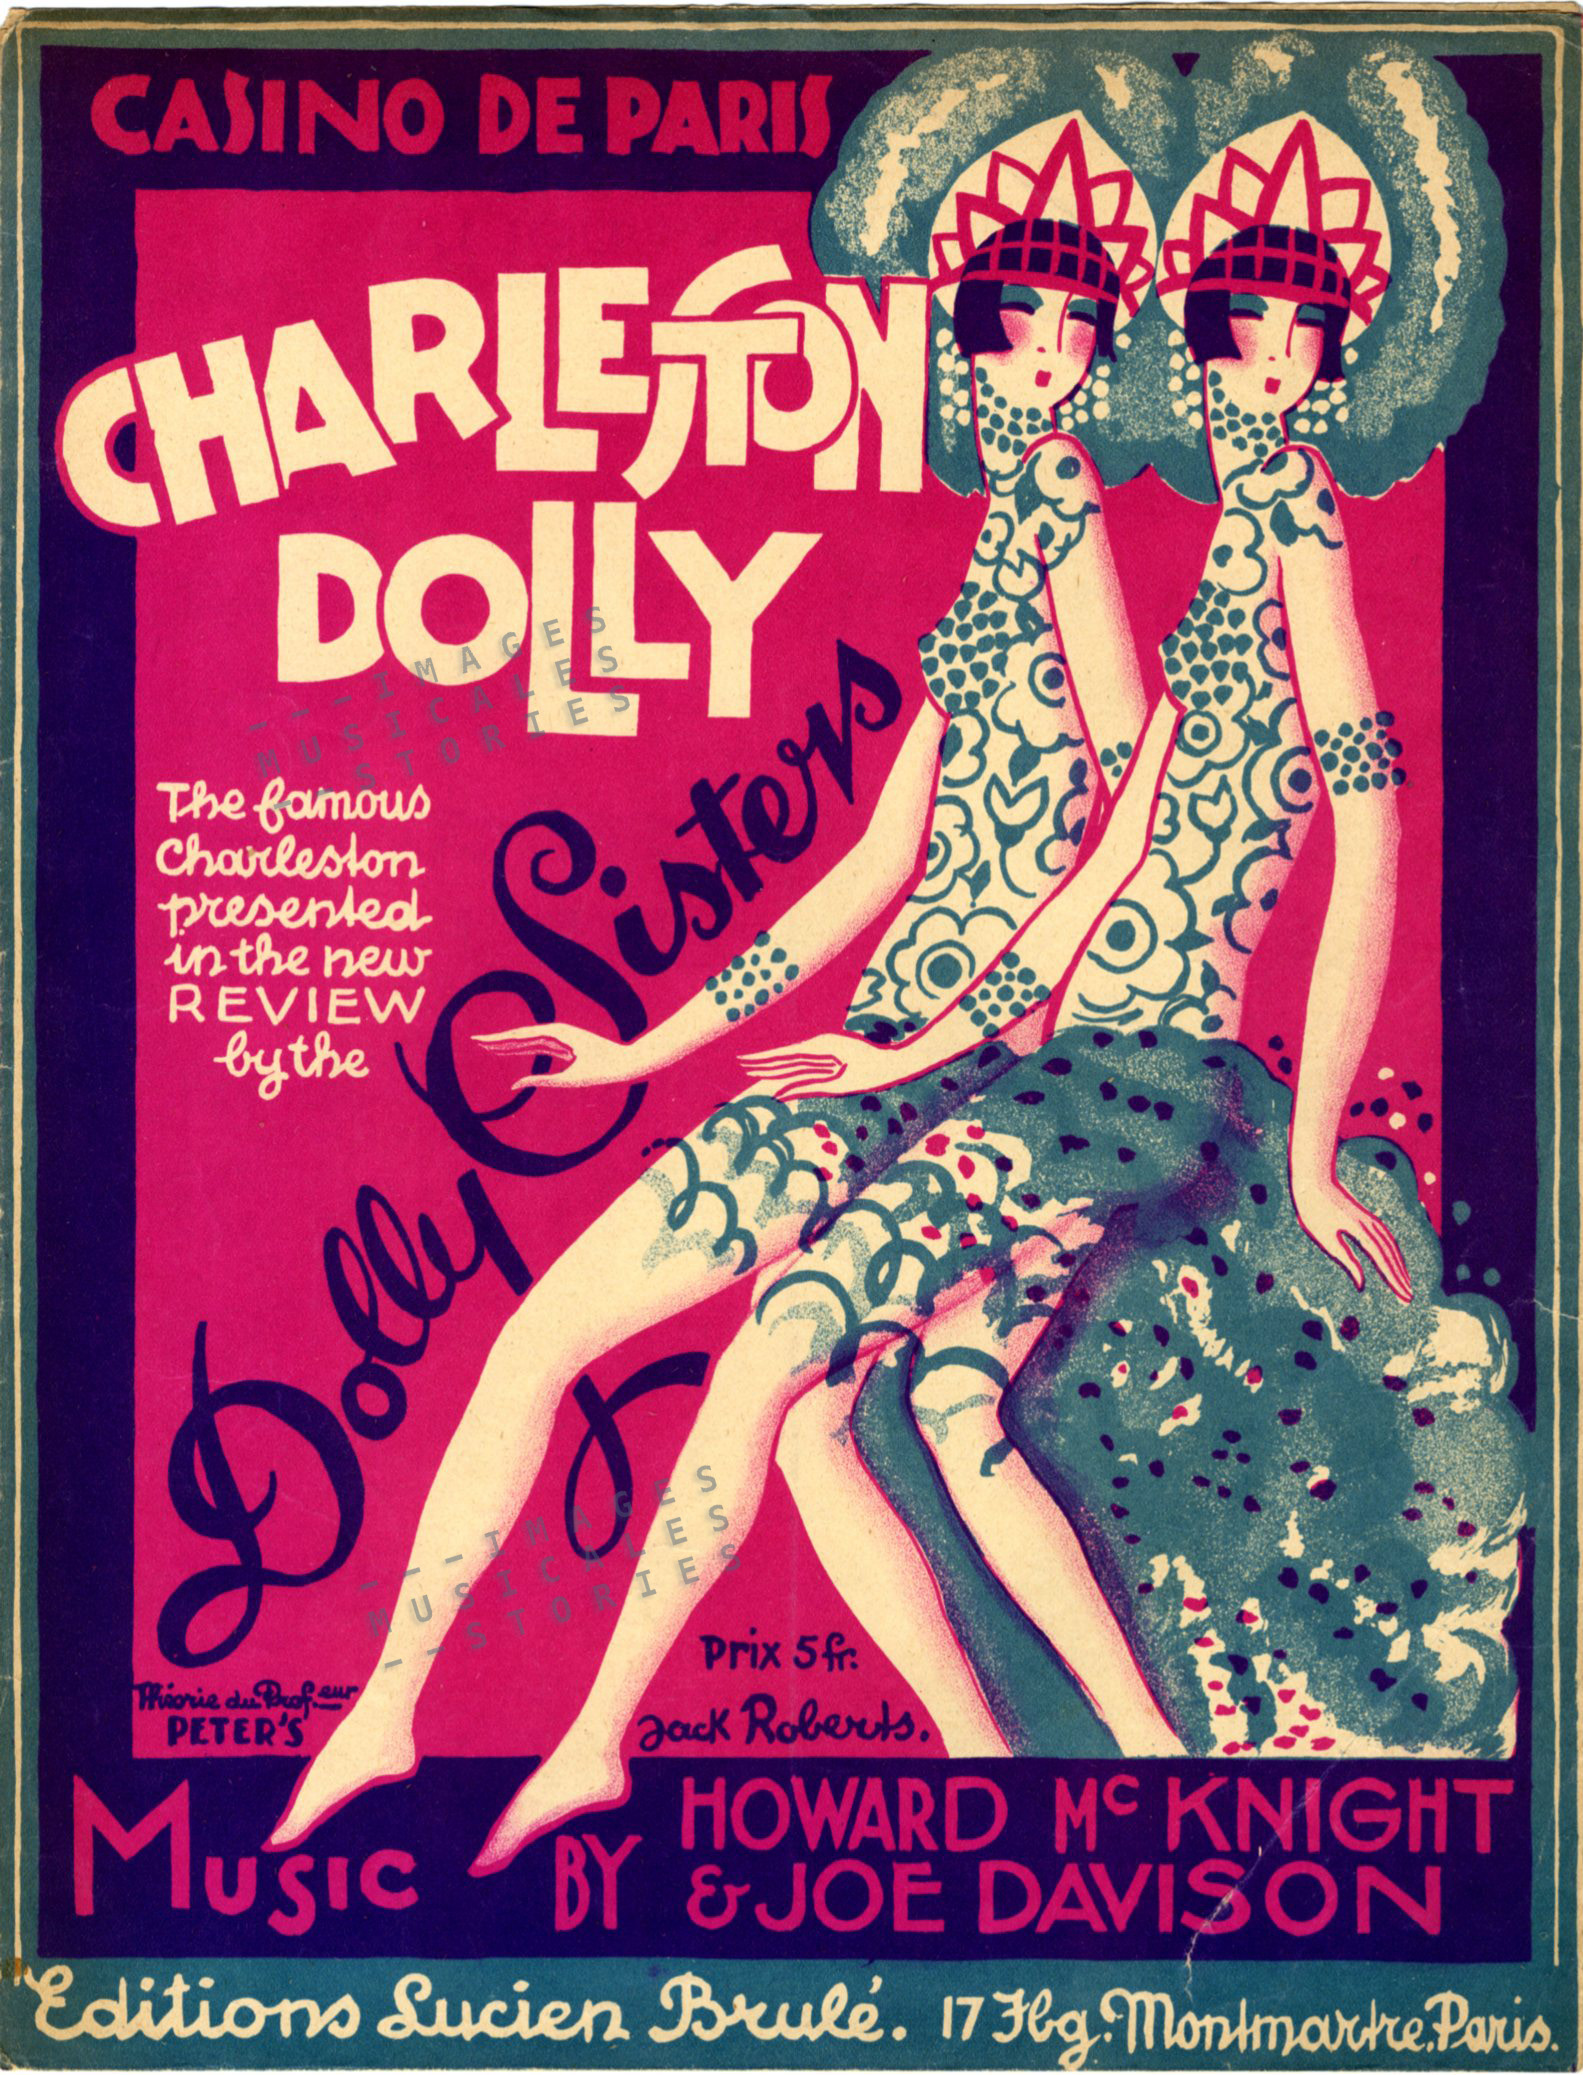 Charleston Dolly, illustrated by Jack Roberts